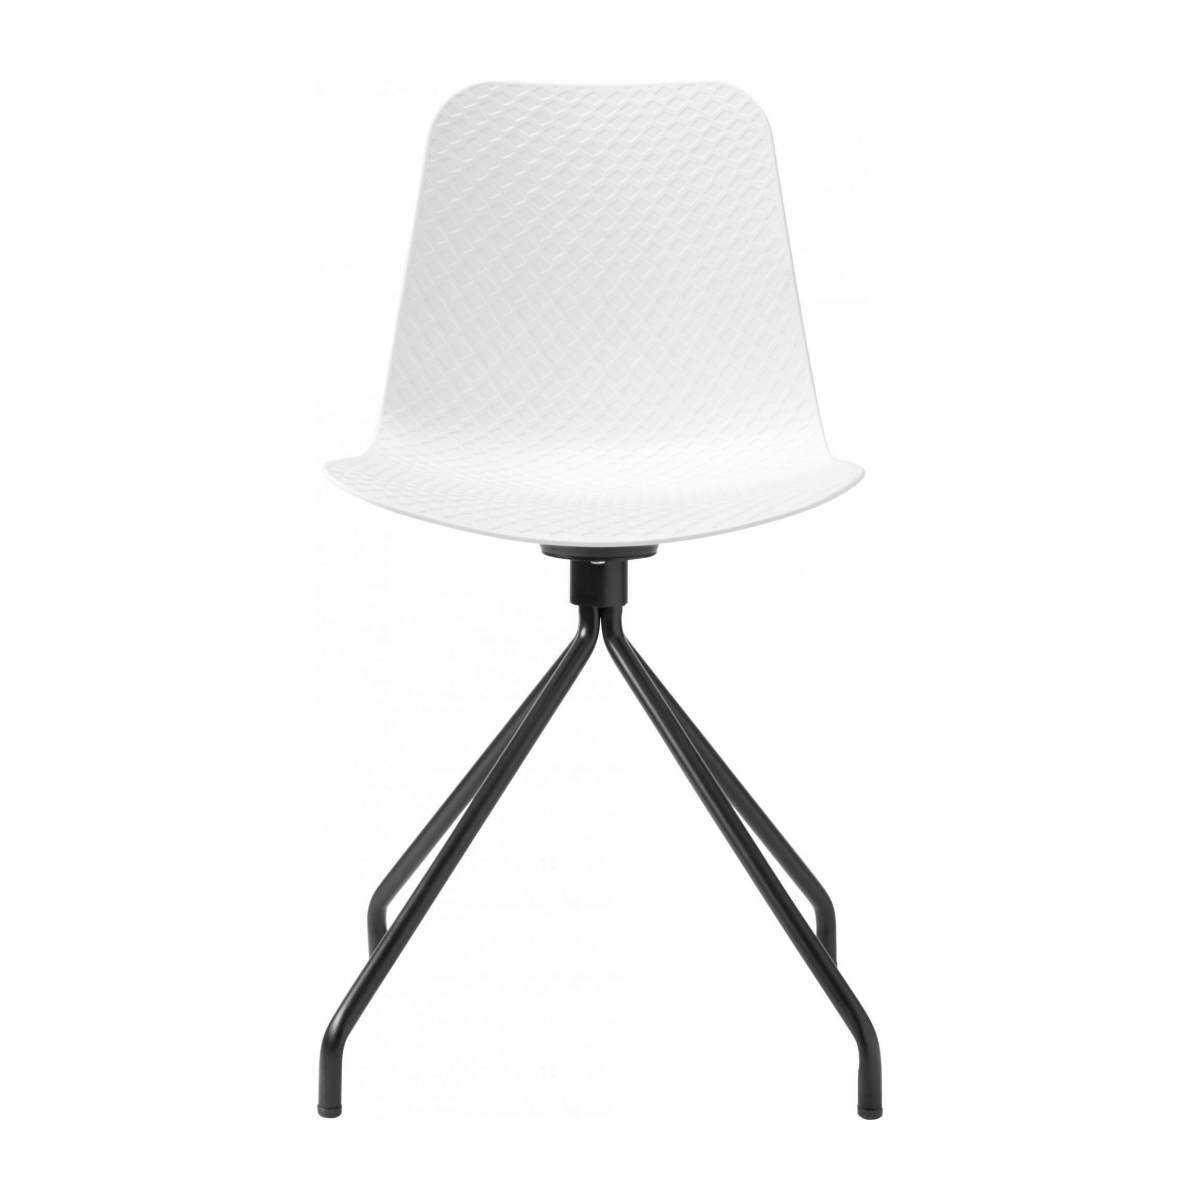 White chair in polypropylene and lacquered steel legs n°1